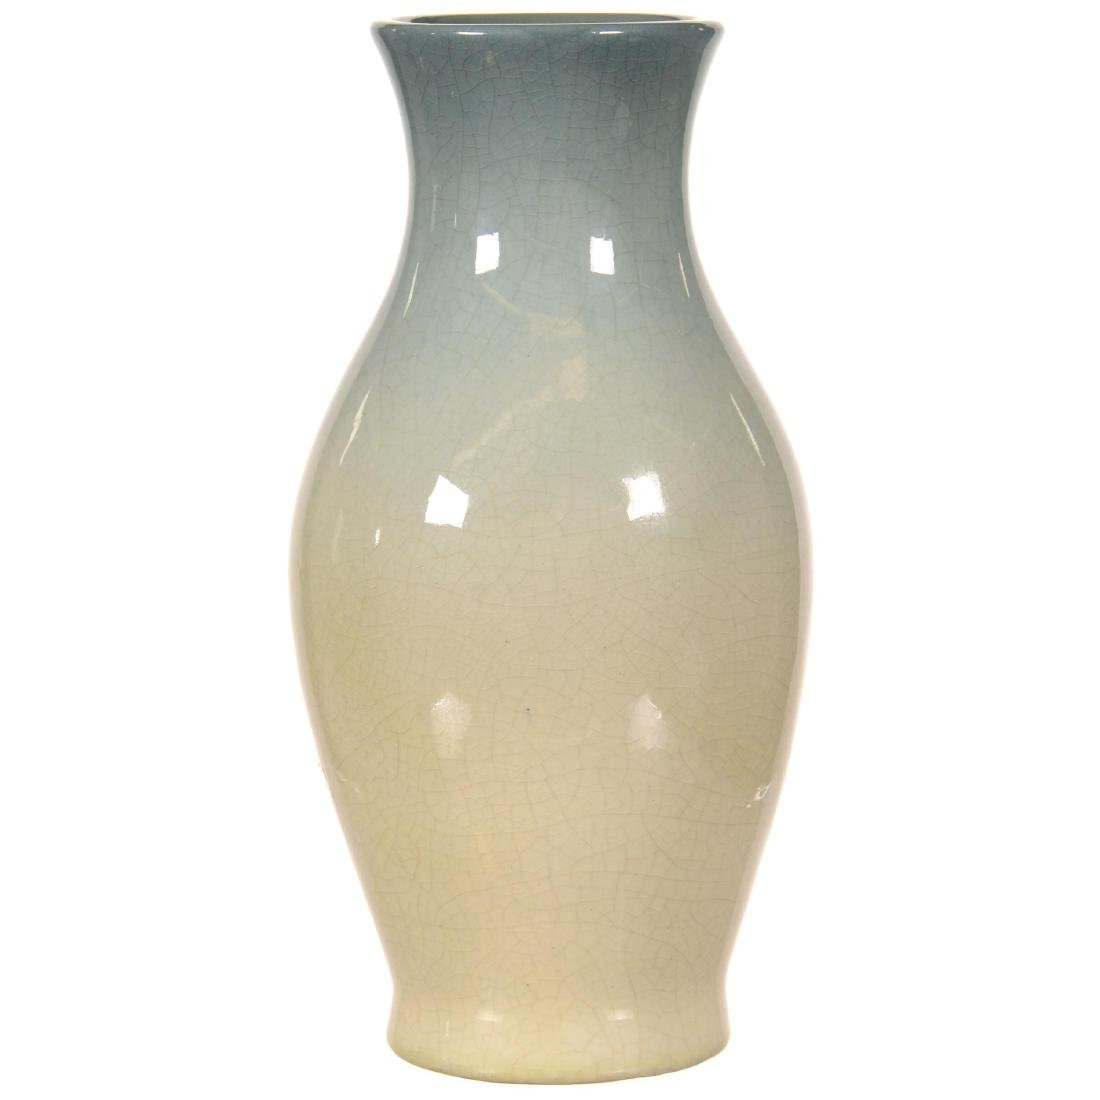 Marked Rozane Royal Ware Art Pottery Vase - 2